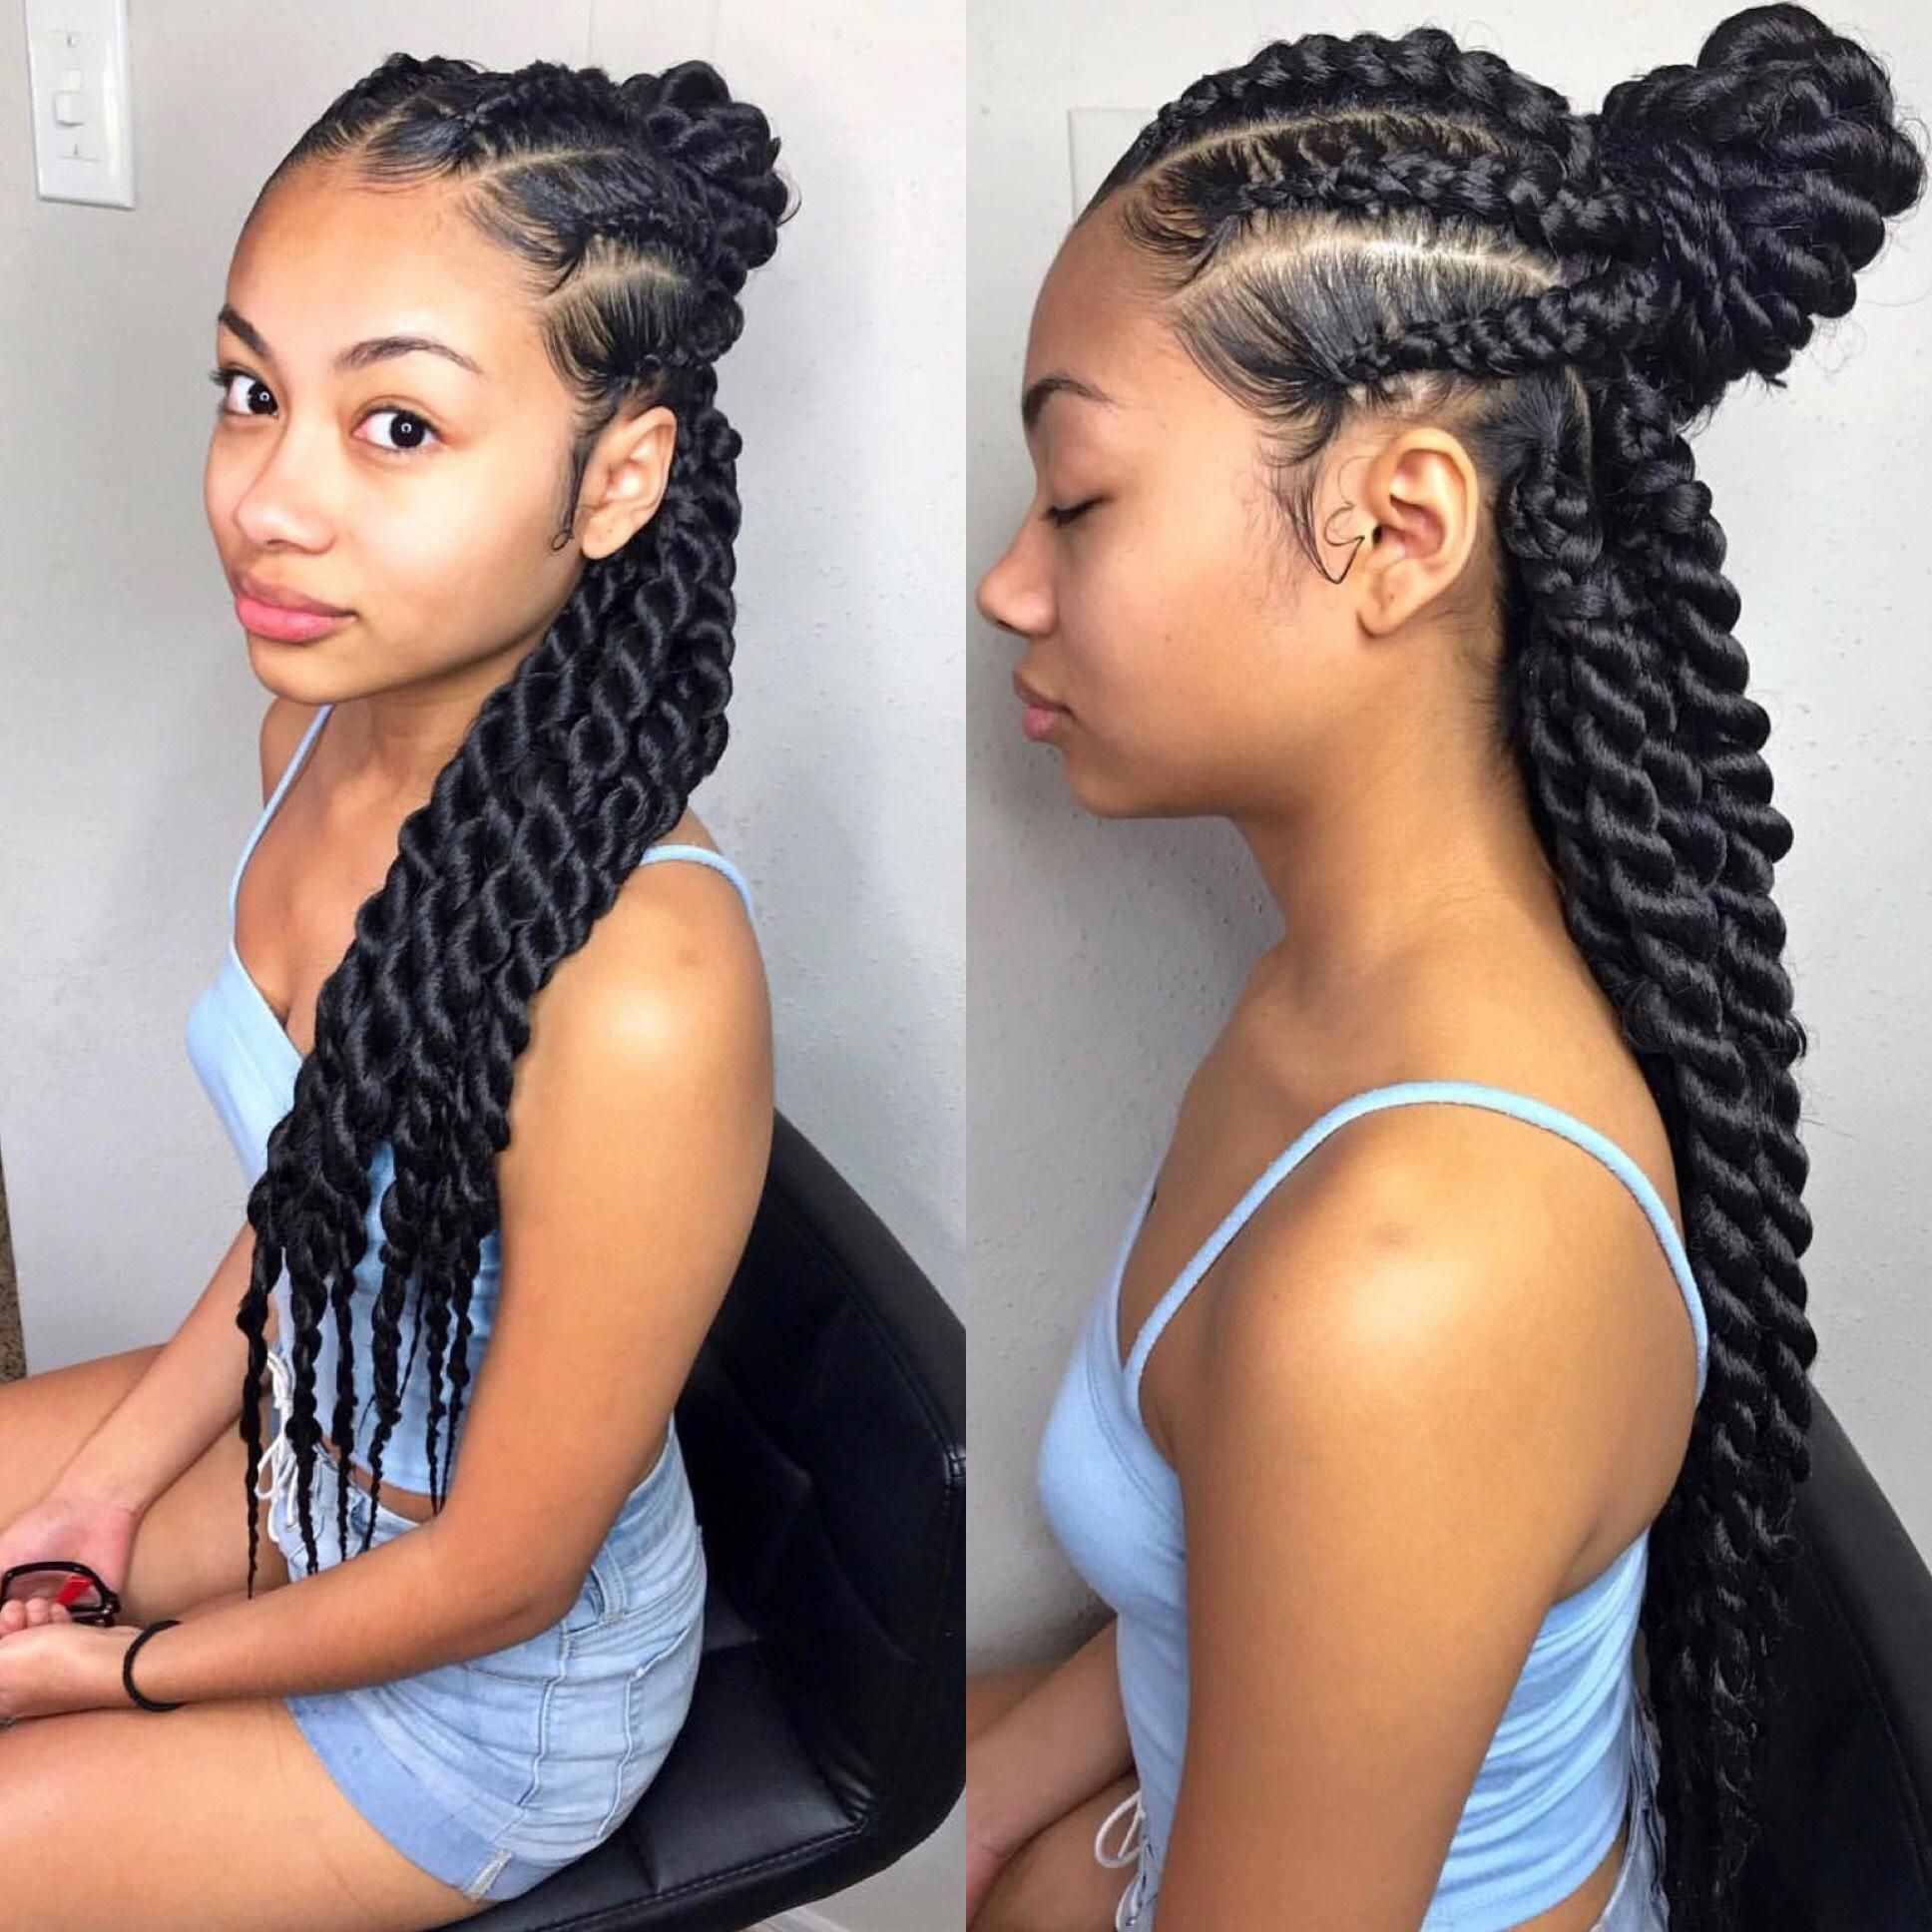 Latest Braided Hairstyle Shortbraidedhairstyles Half Braided Hairstyles Cool Braid Hairstyles Cornrow Hairstyles